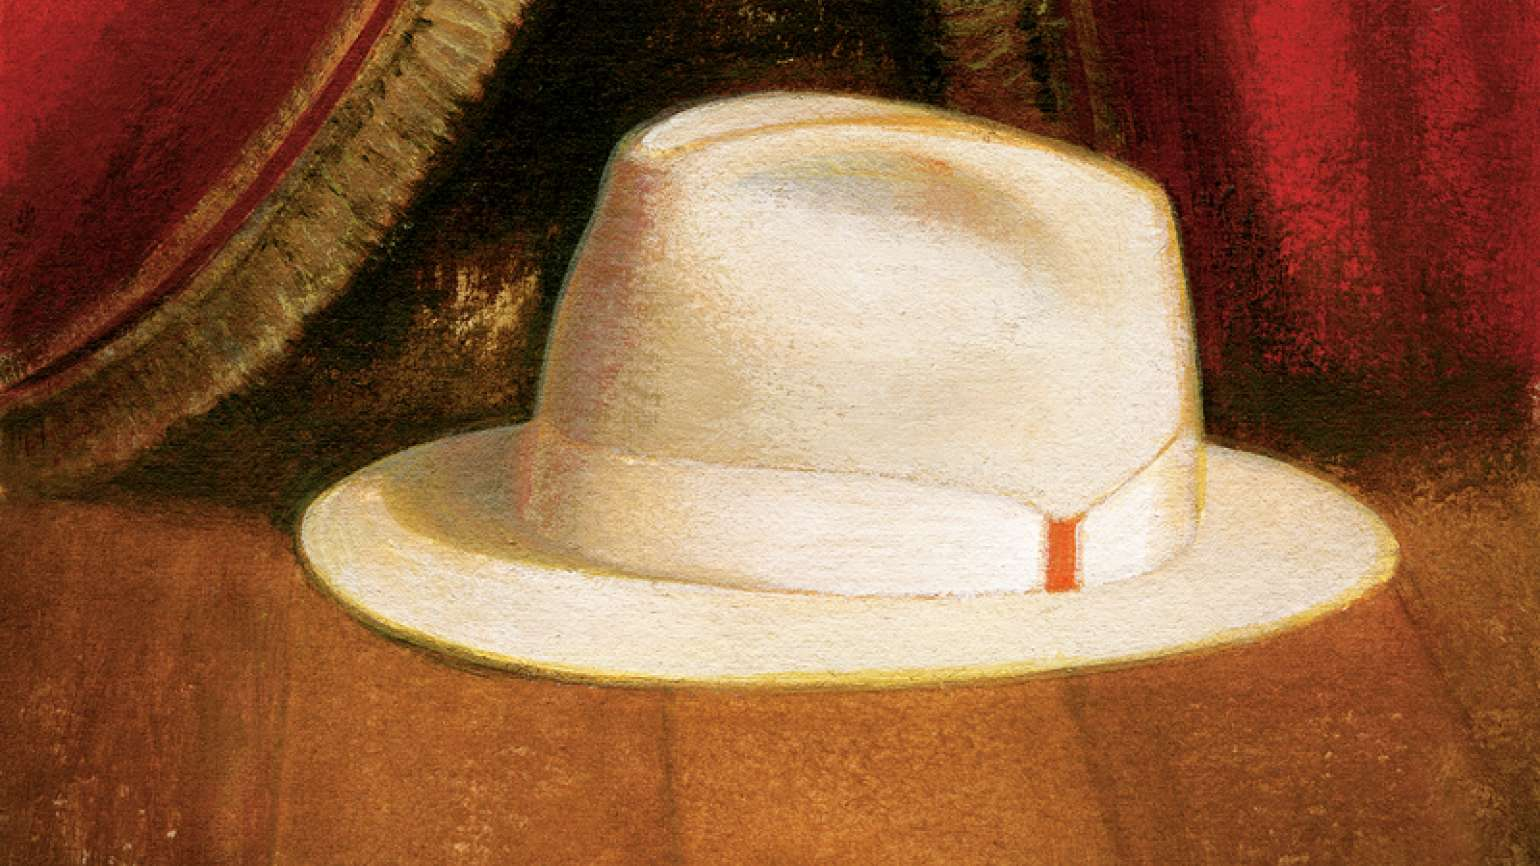 An artist's rendering of a tan fedora on a stage before a red velvet curtain